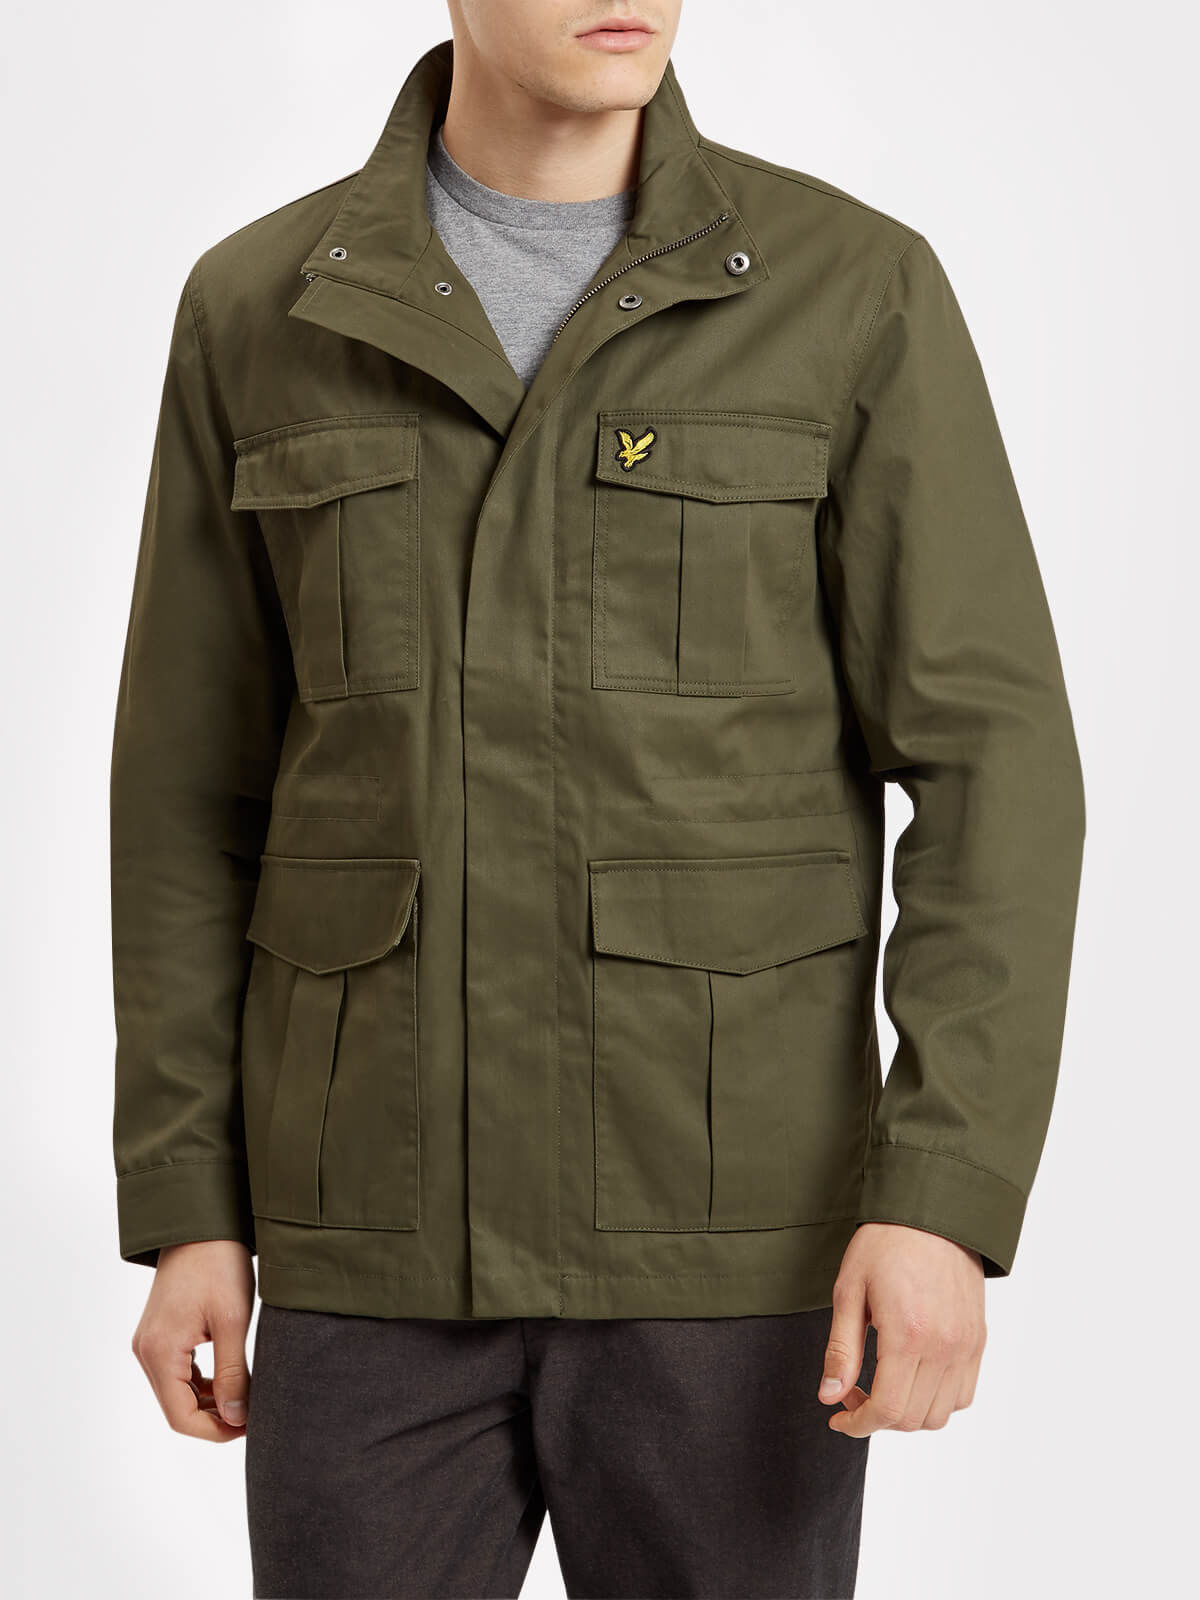 Lyle and Scott Olive Field Jacket